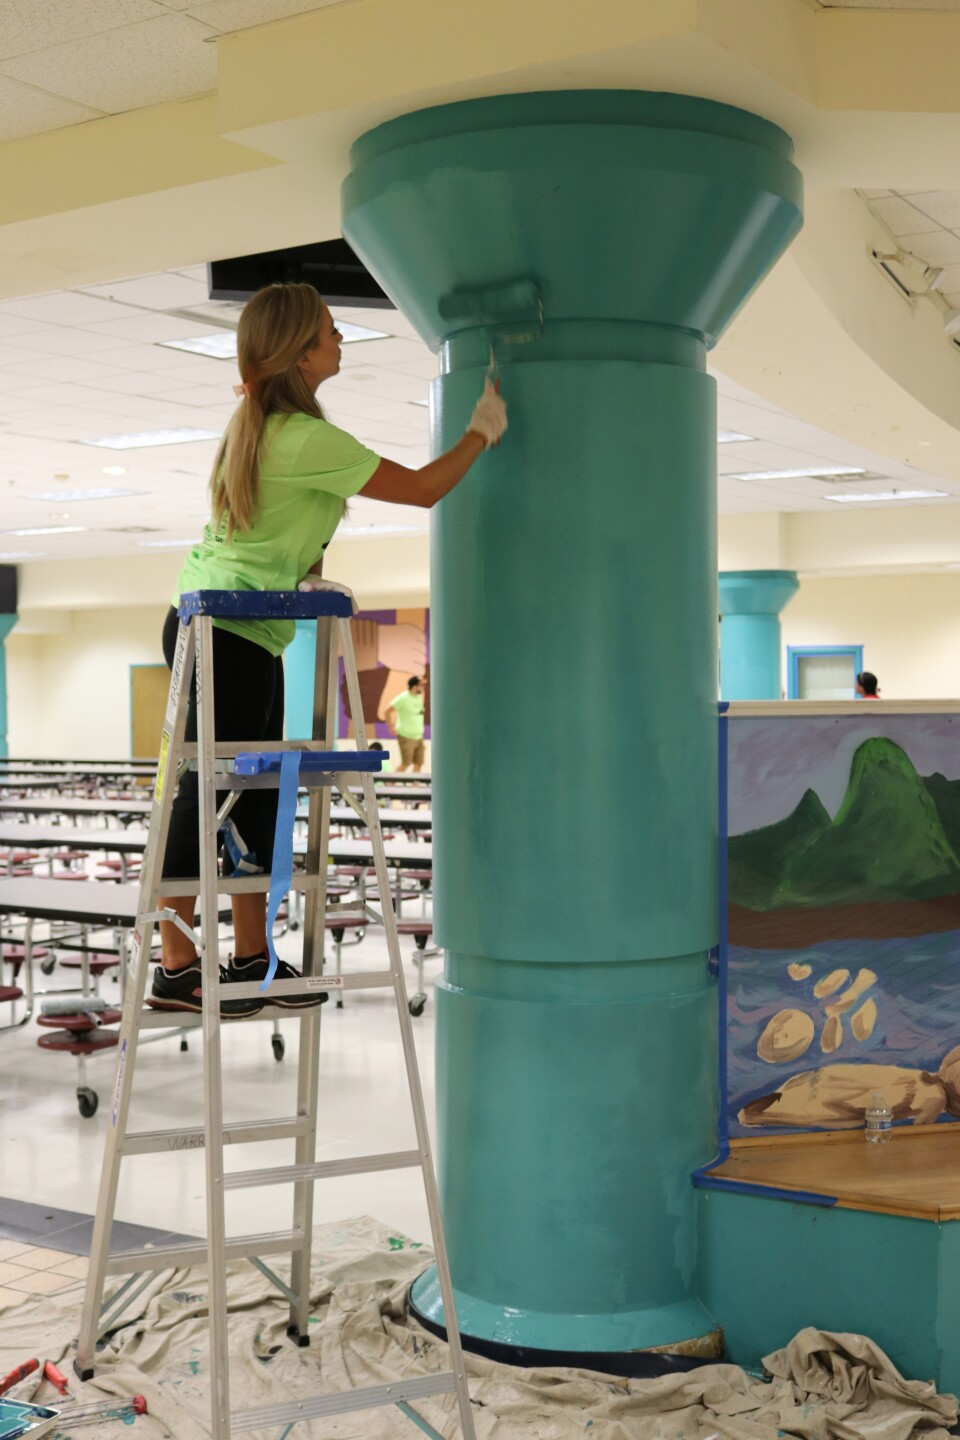 Photos: What volunteers did at 3 Richmond schools to 'empower and encourage' connection